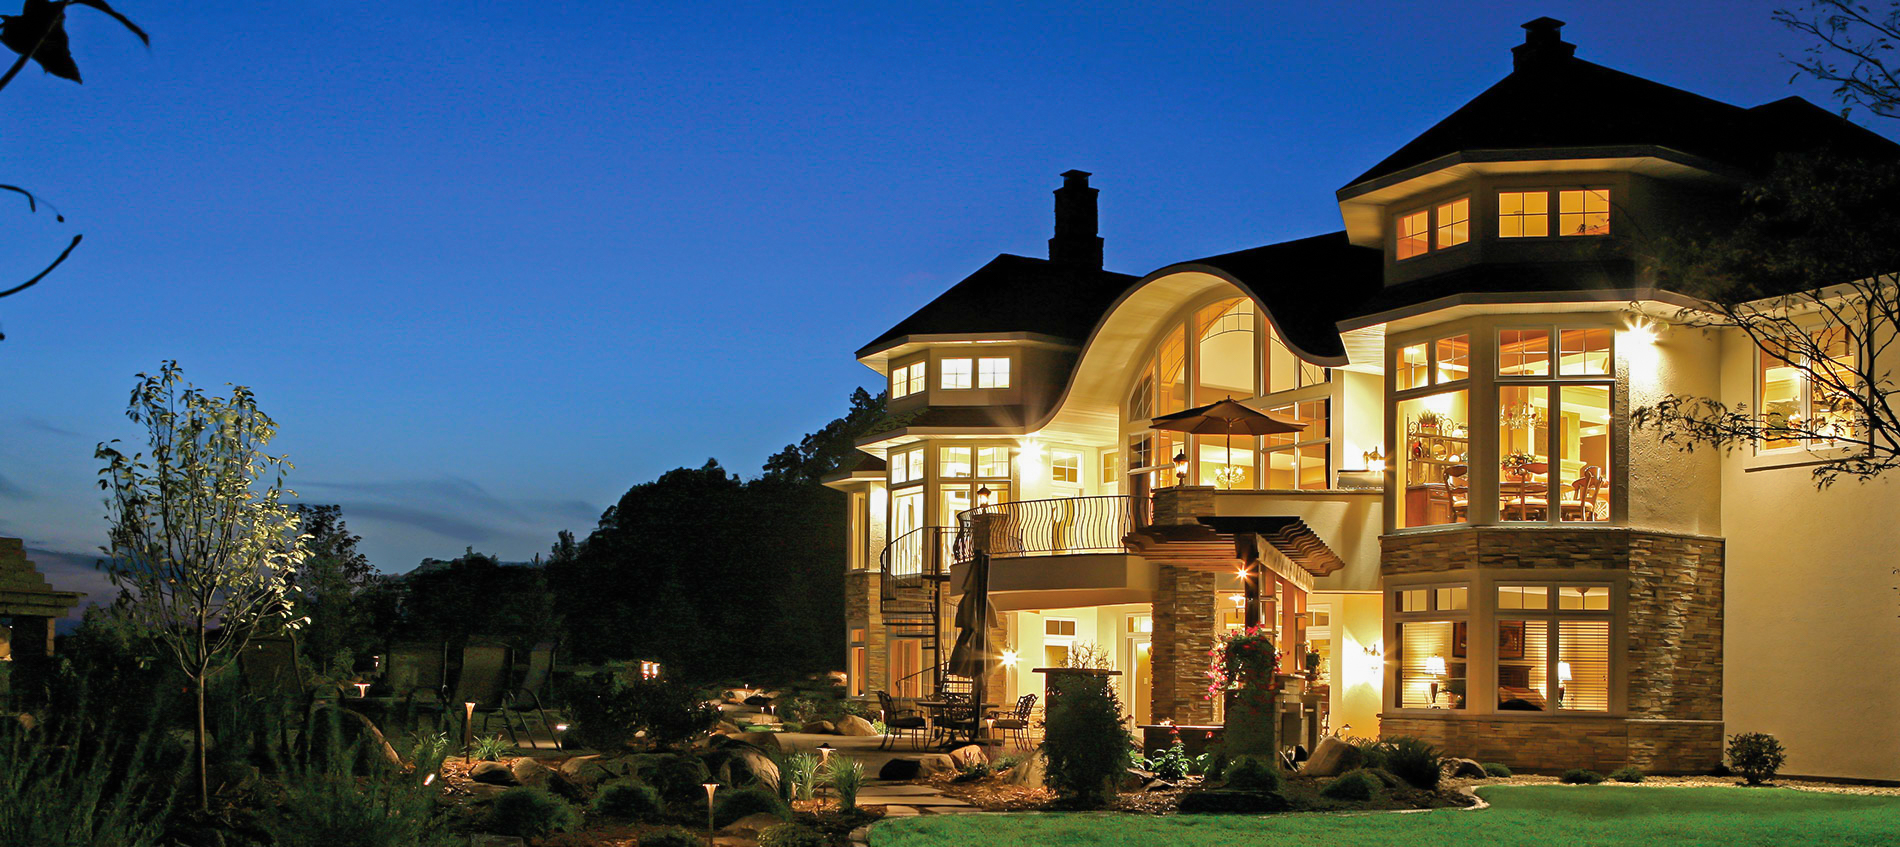 Smuckler Architectural Custom Homes | Premier Luxury Home Architect In  Minnesota